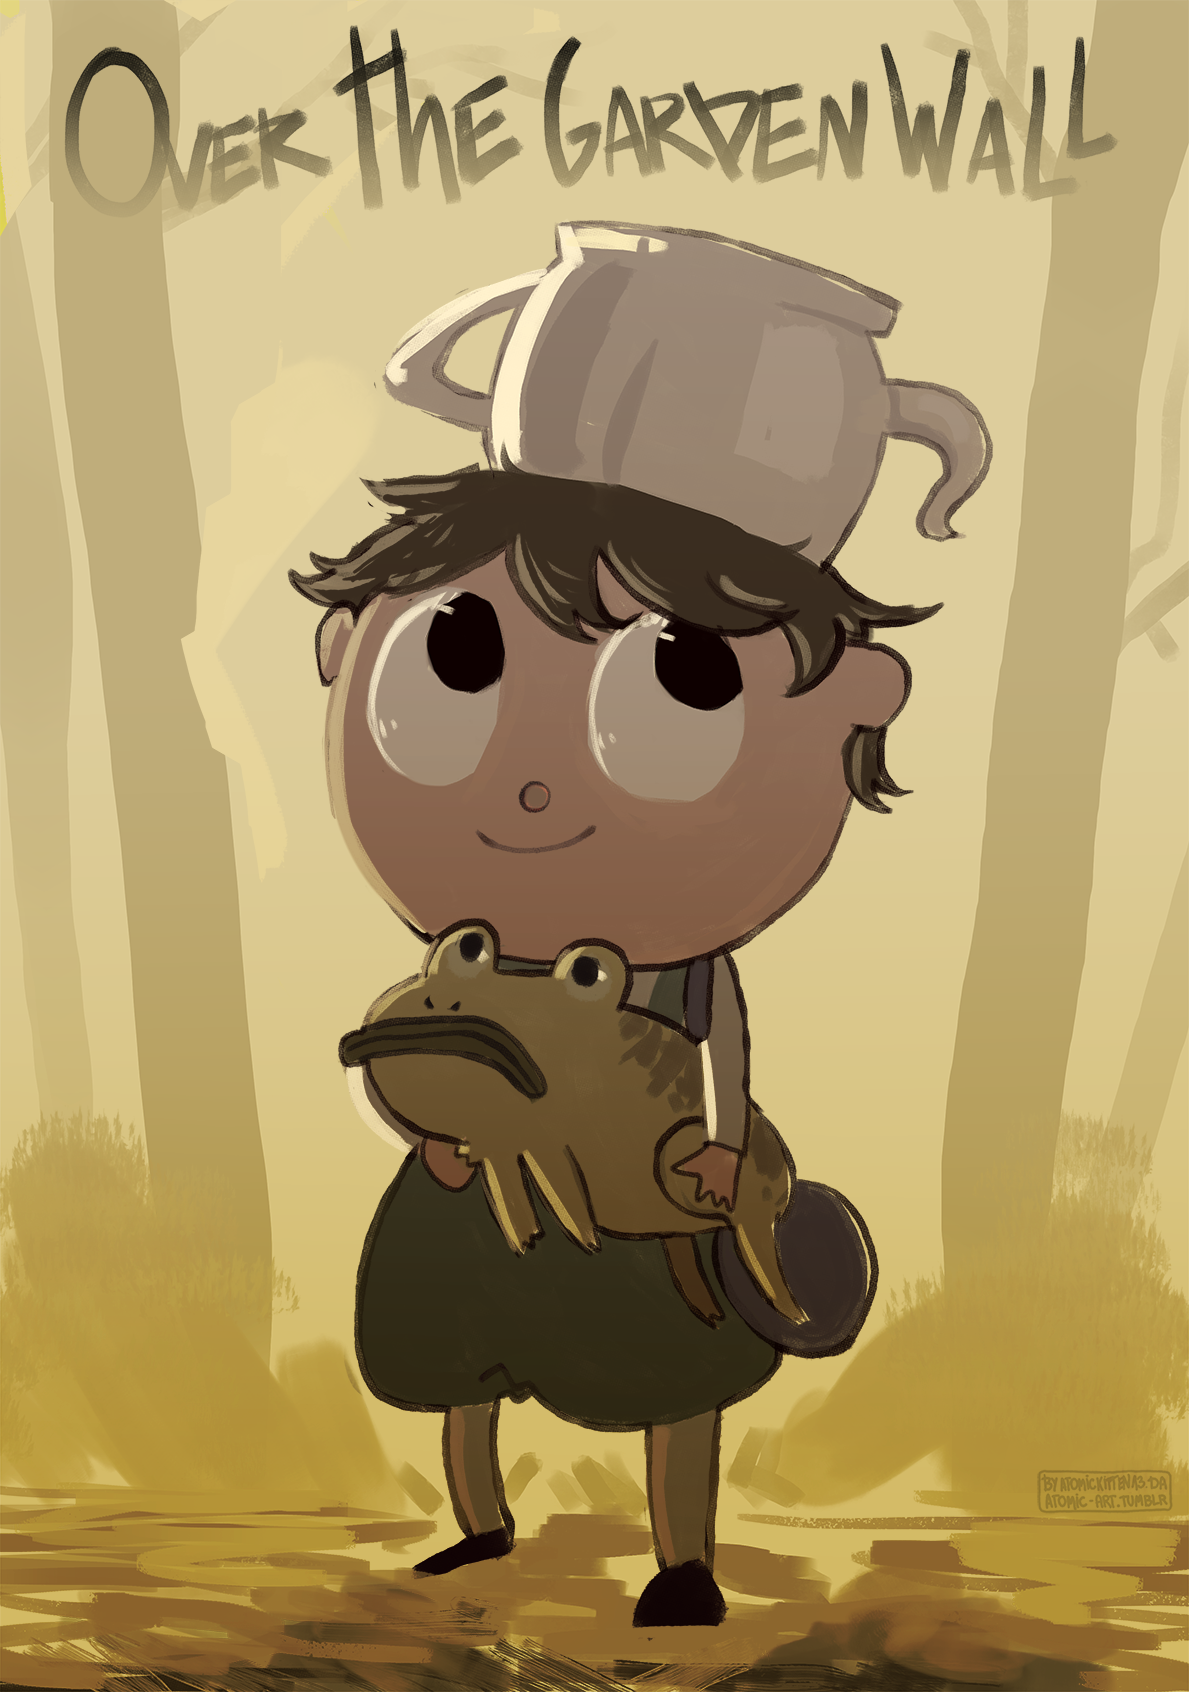 Gregory and his pet frog